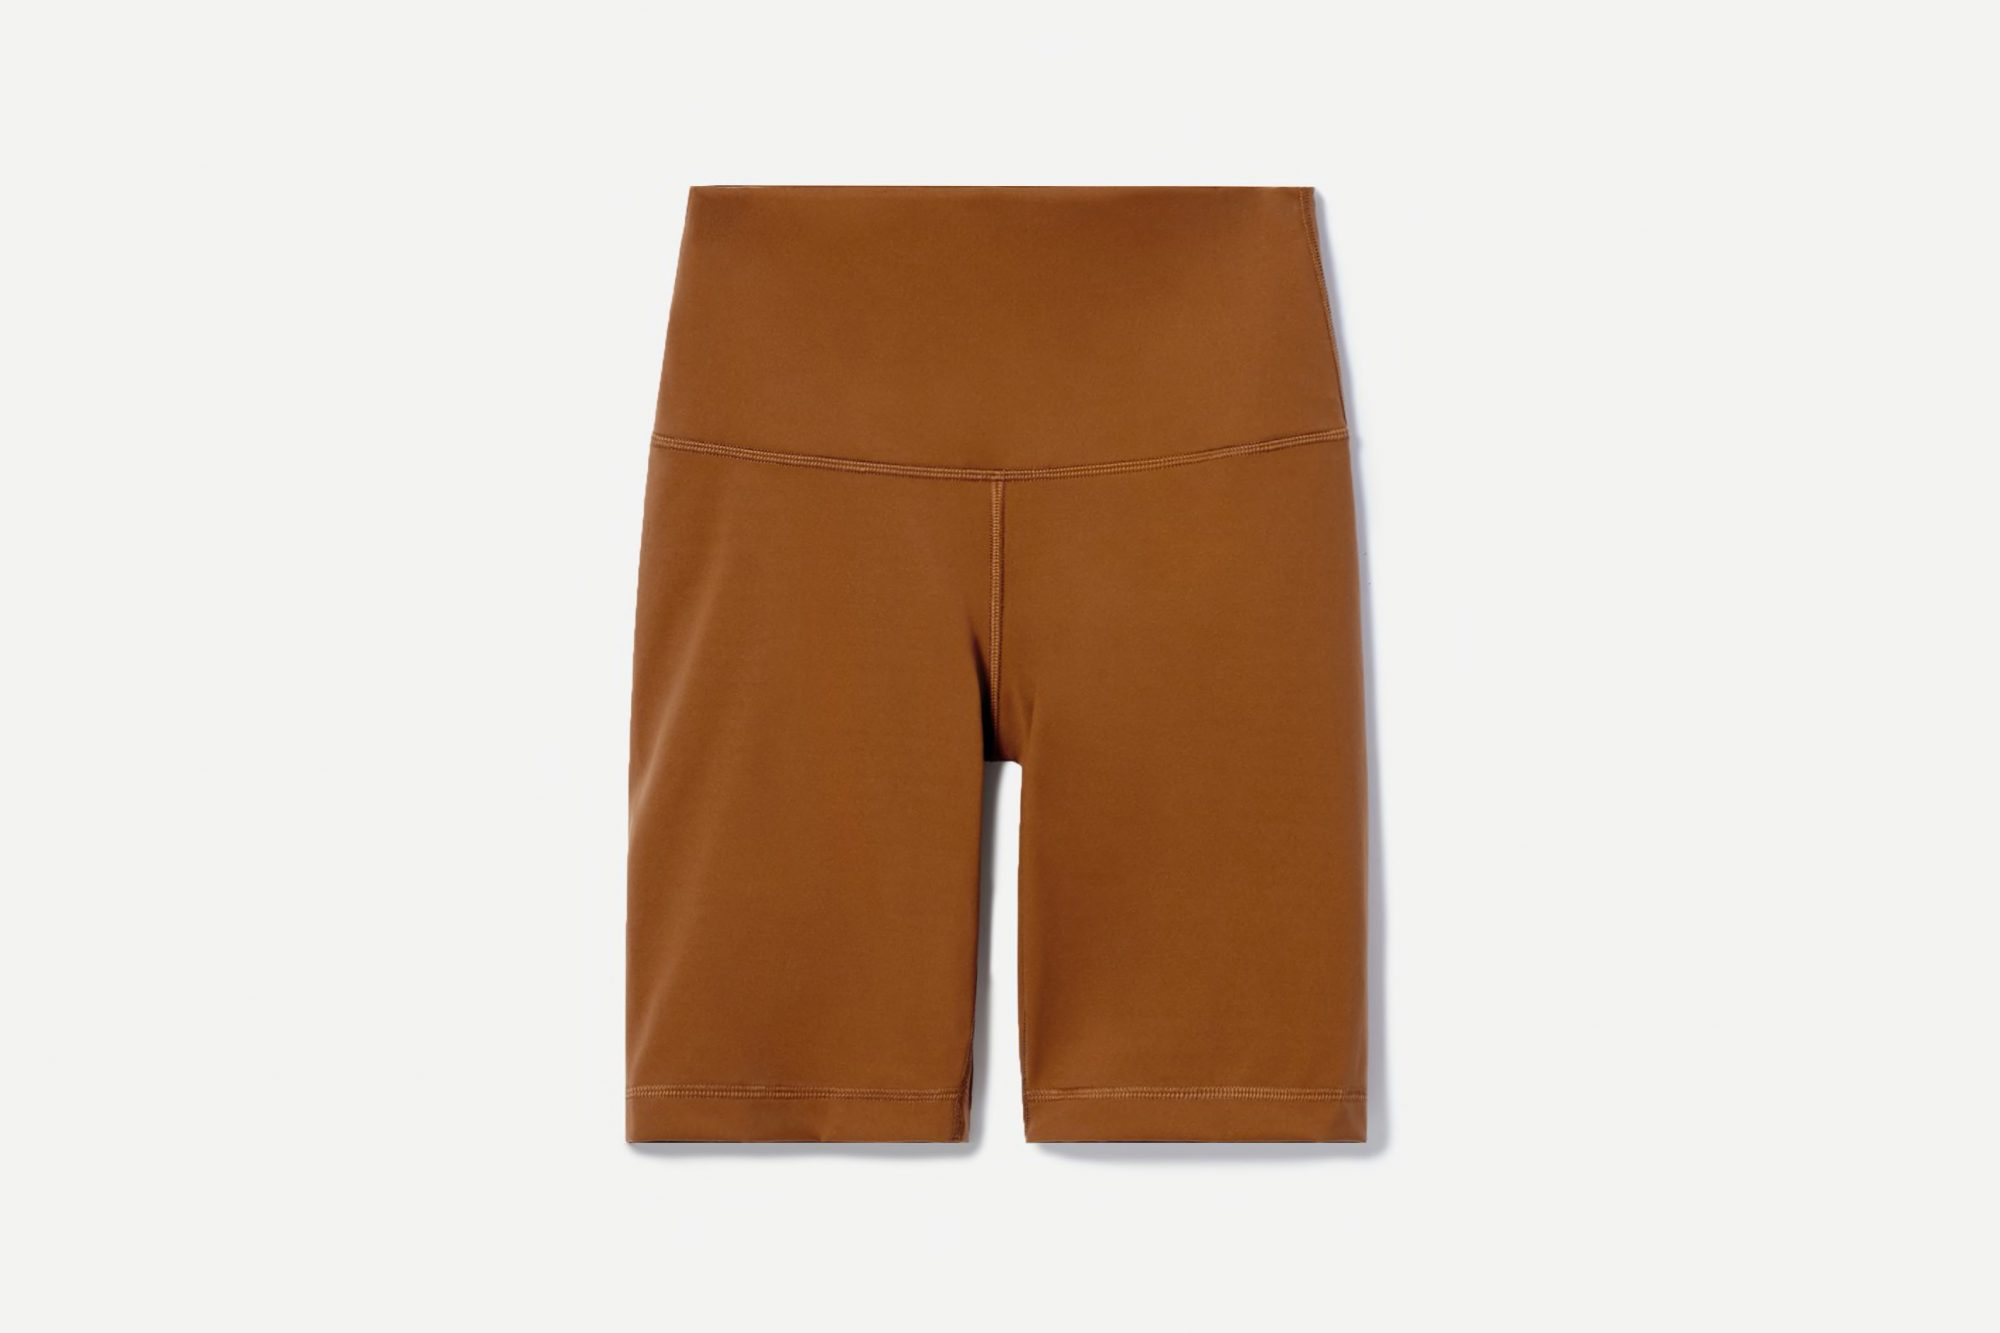 everlane-bike-shorts-copper.jpg